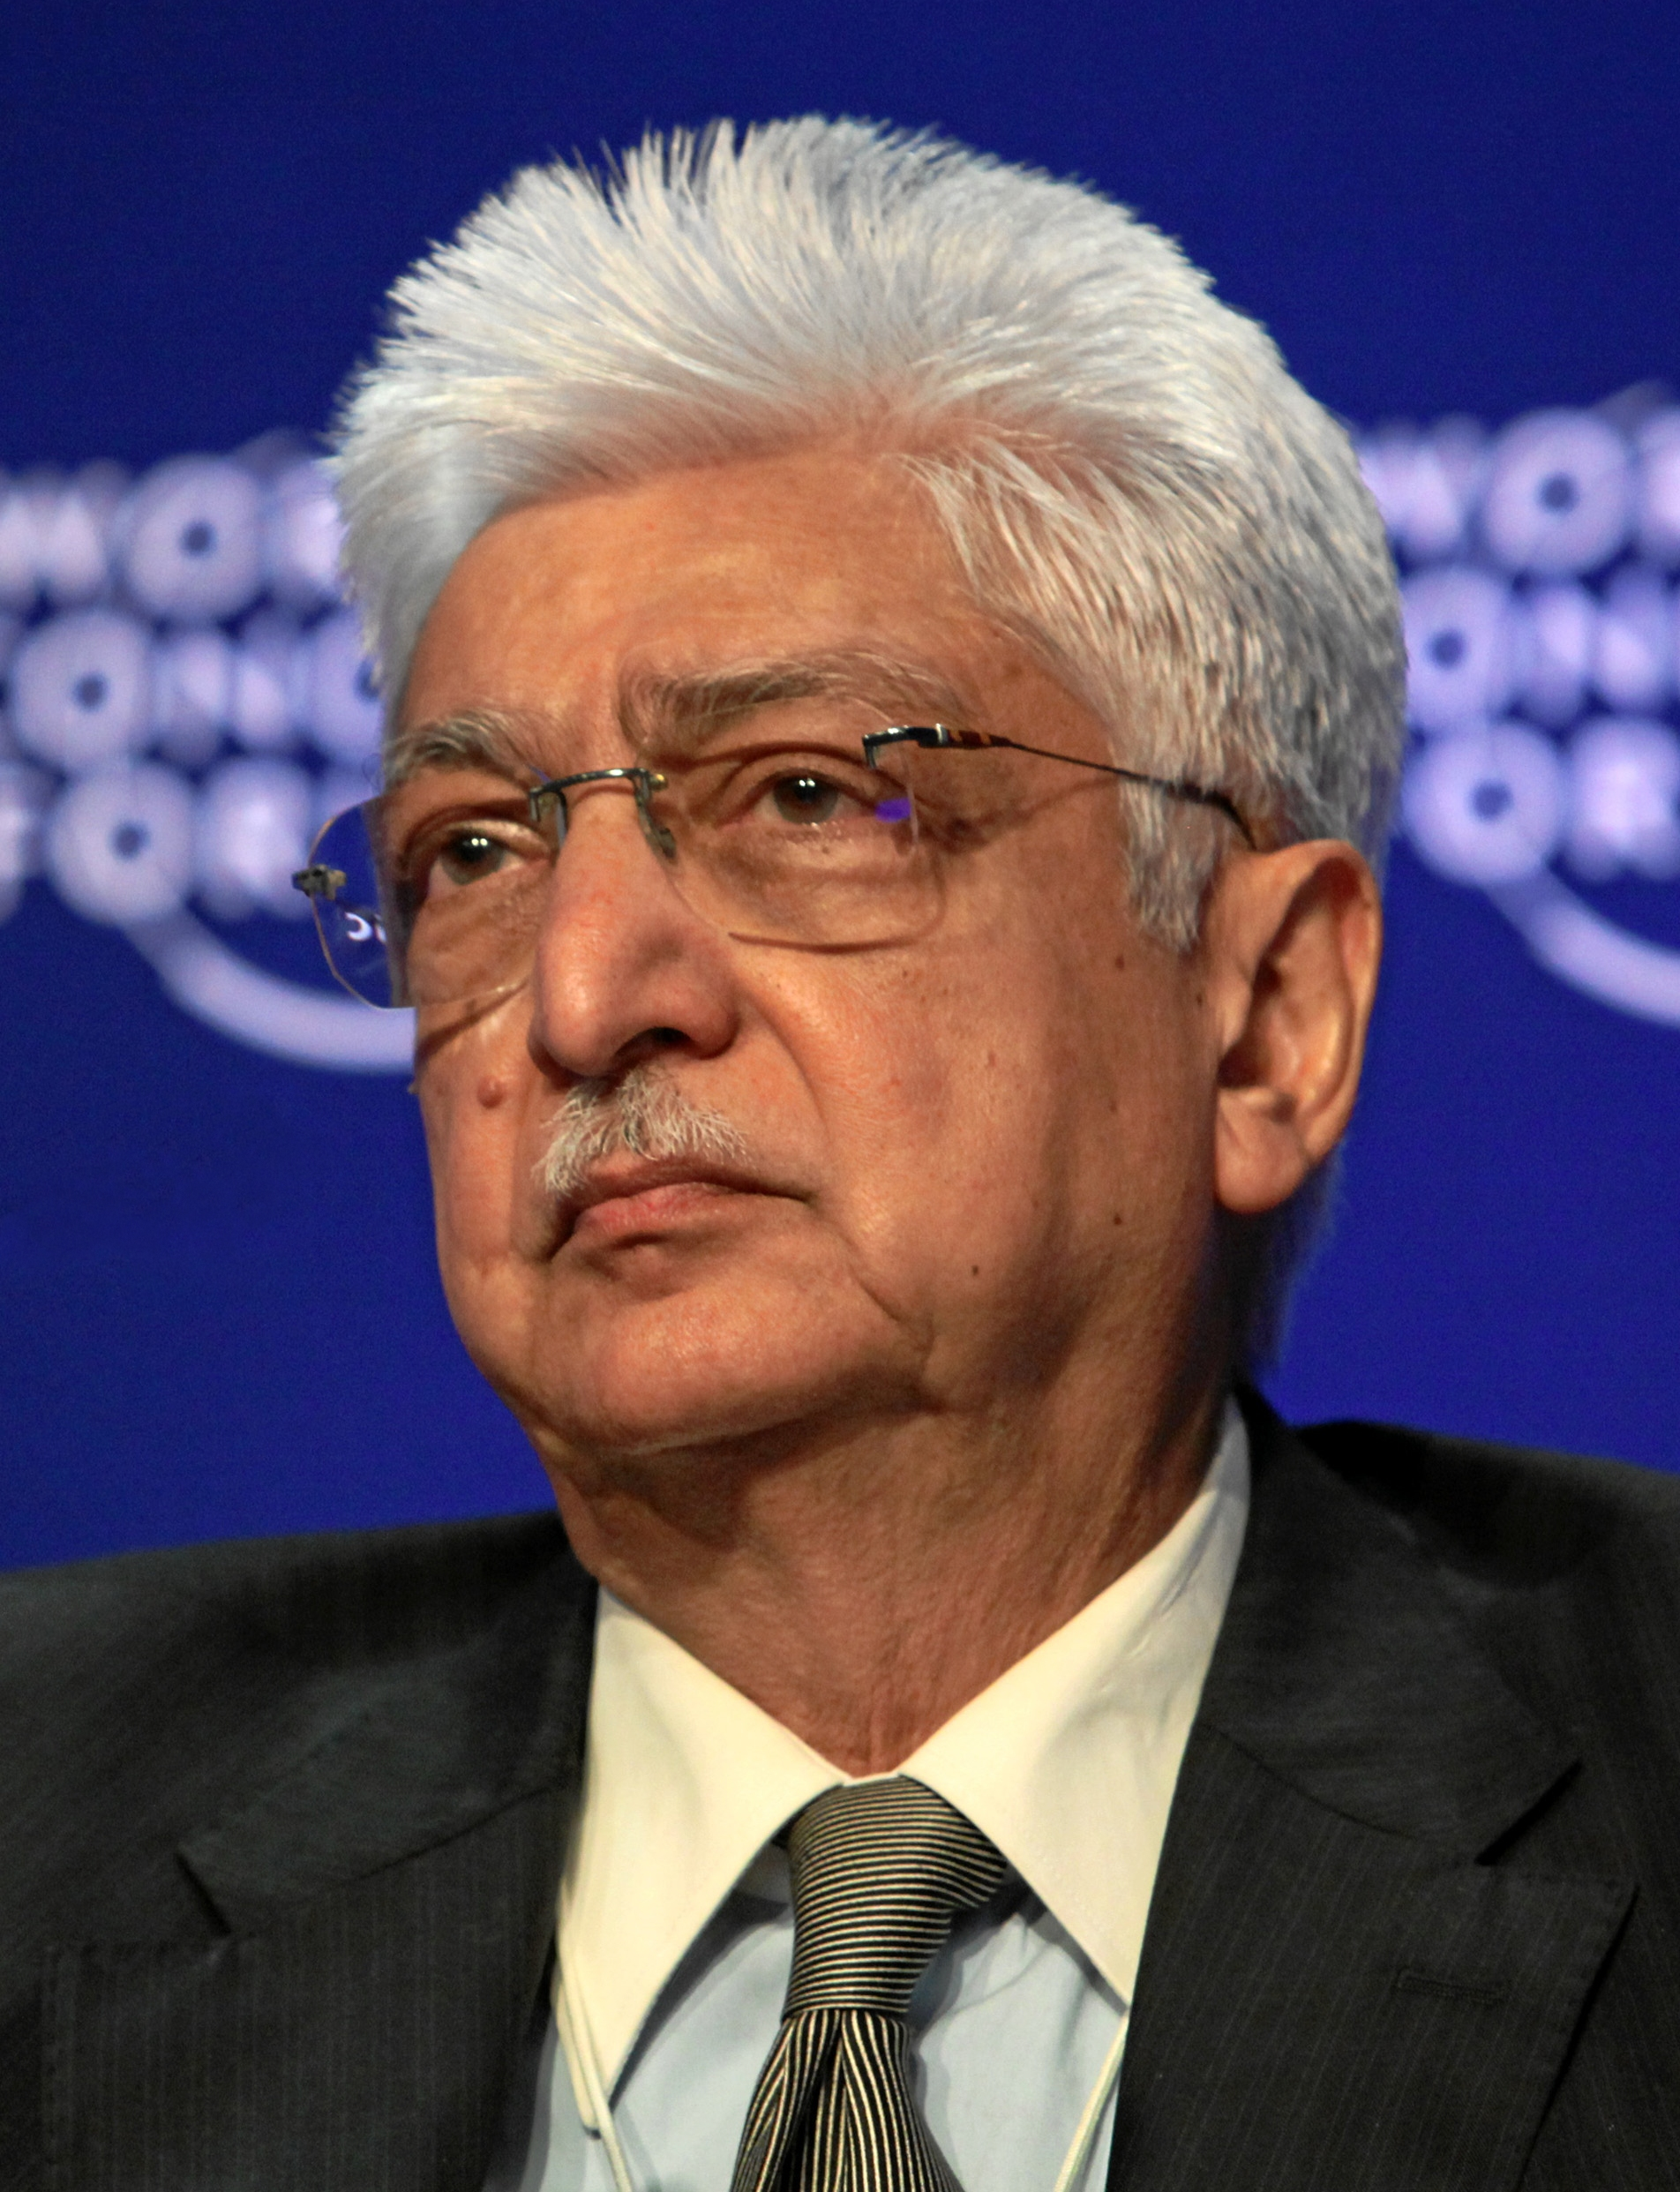 The 72-year old son of father Mohamed Hashem Premji and mother(?), 172 cm tall Azim Premji in 2018 photo